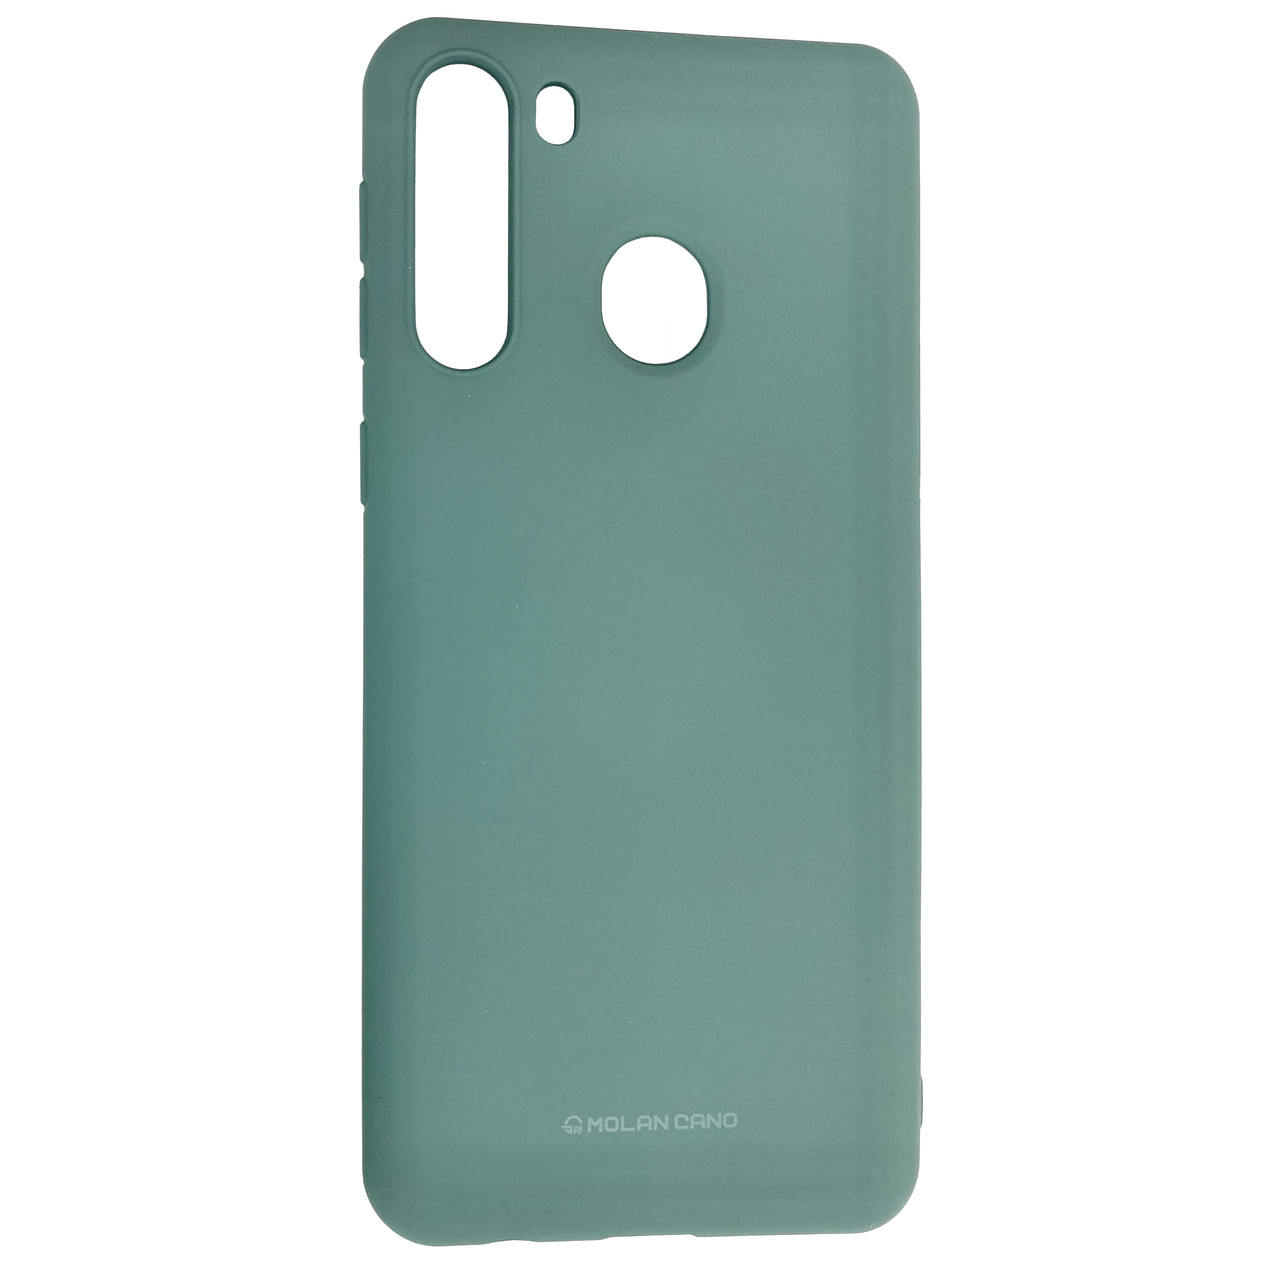 Чехол-накладка Silicone Hana Molan Cano SF Jelly для Samsung Galaxy A21 (SM-A215) (green)